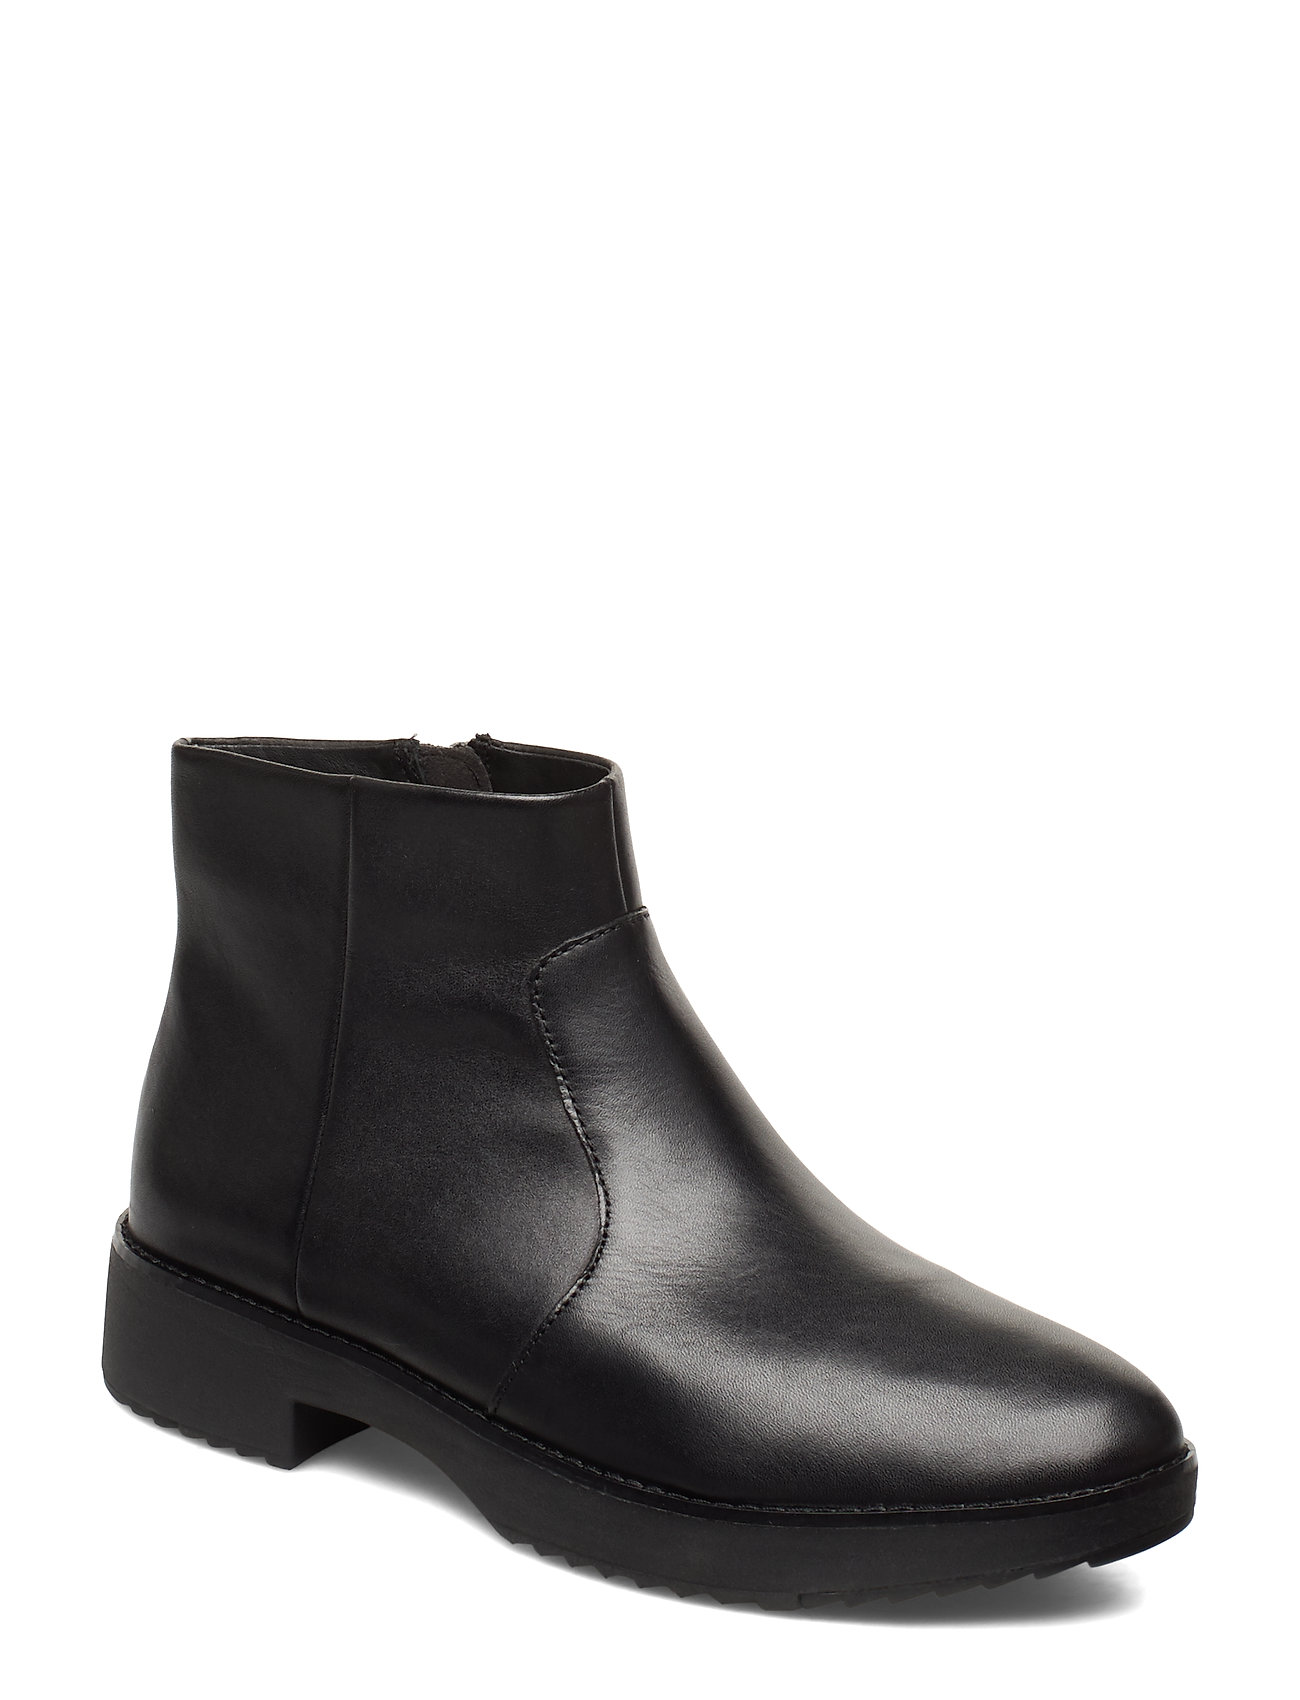 Image of Maria Ankle Boots Shoes Boots Ankle Boots Ankle Boot - Flat Sort FitFlop (3406209003)